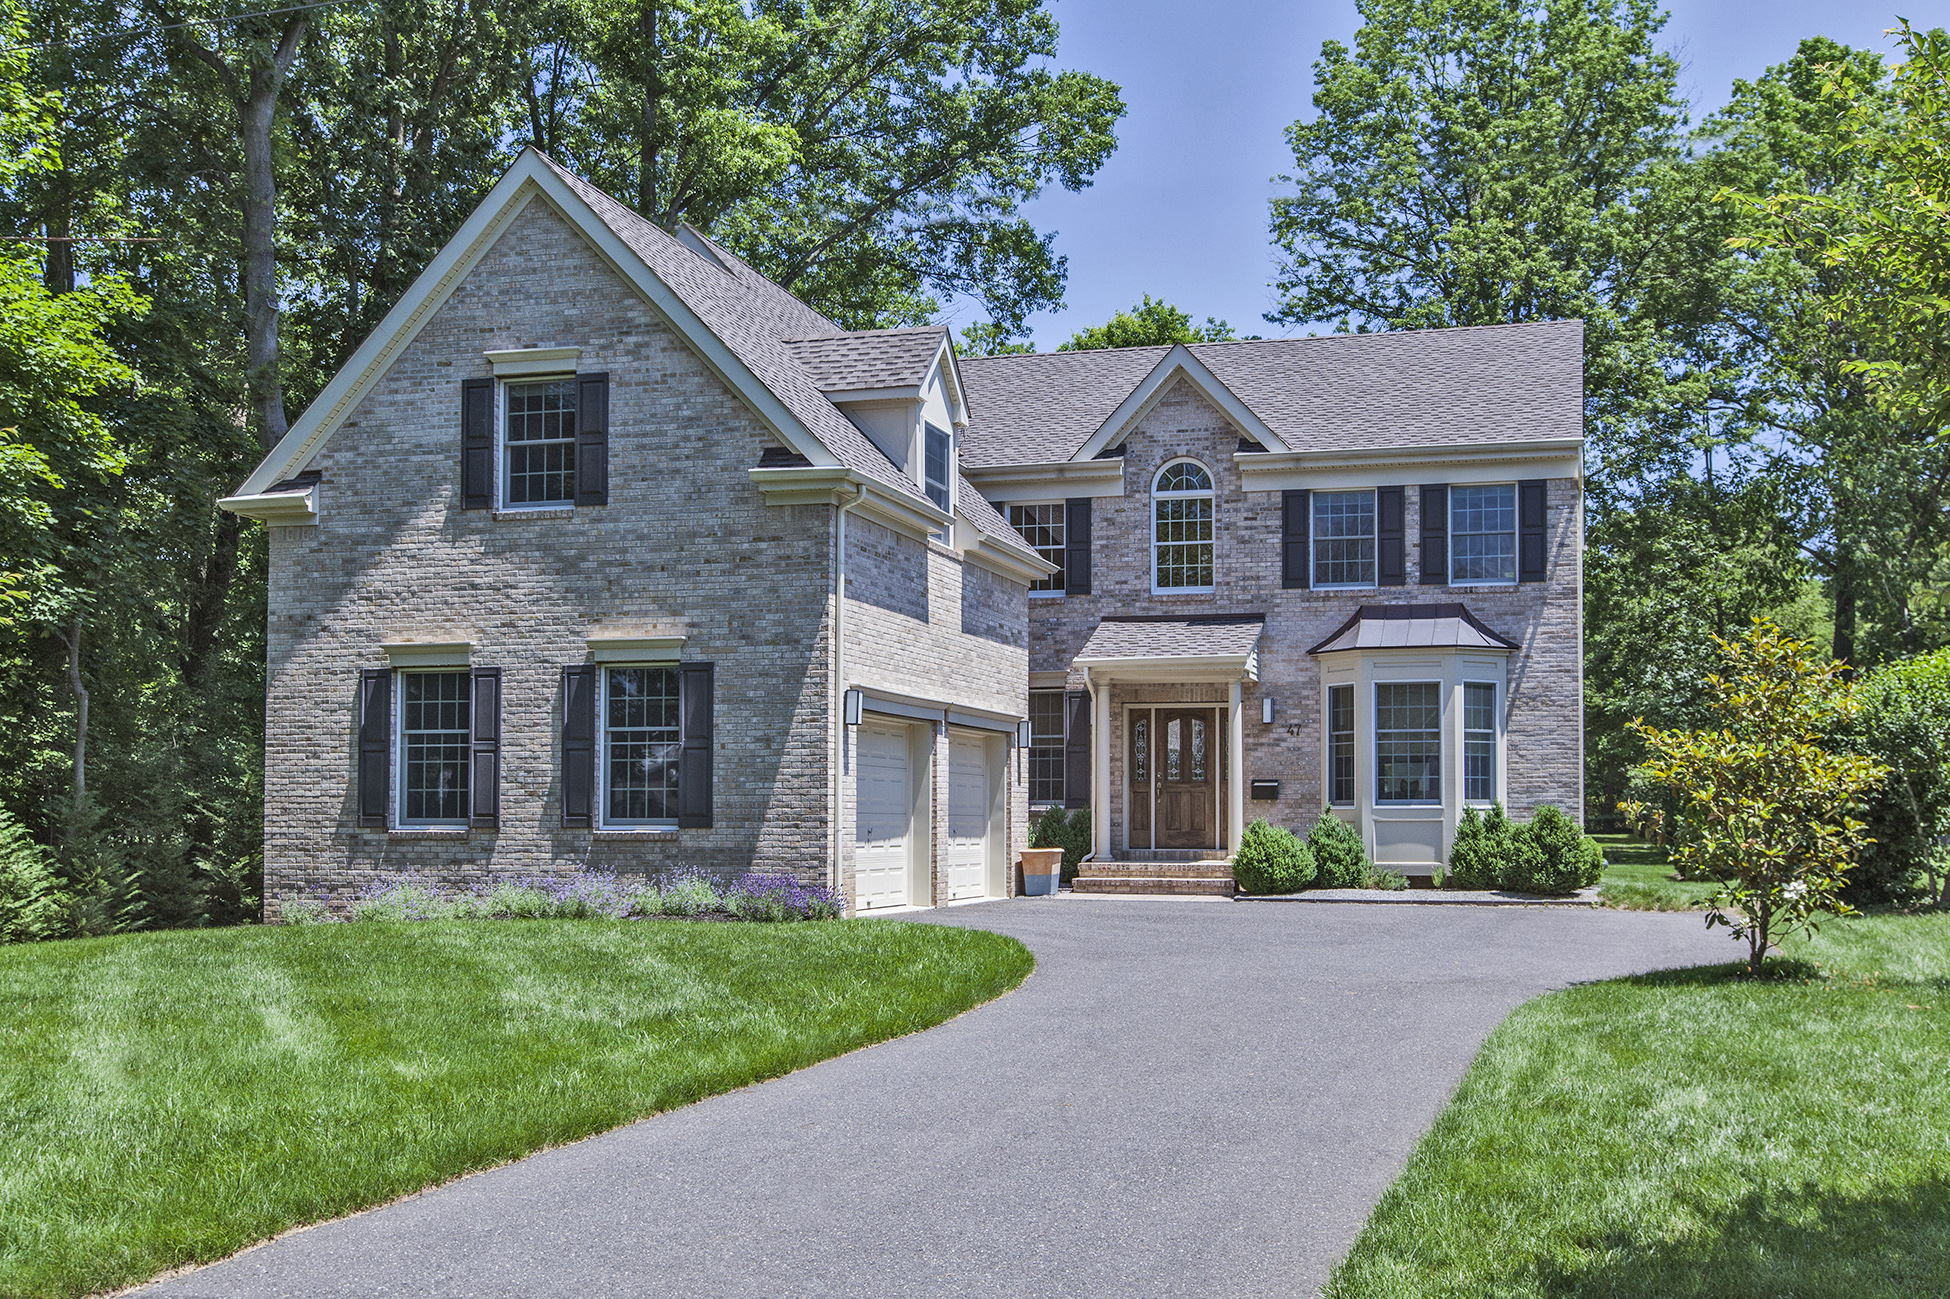 Single Family Home for Sale at Awash with Sunlight in a Prized Princeton Location 47 Carnahan Place Princeton, New Jersey 08540 United States